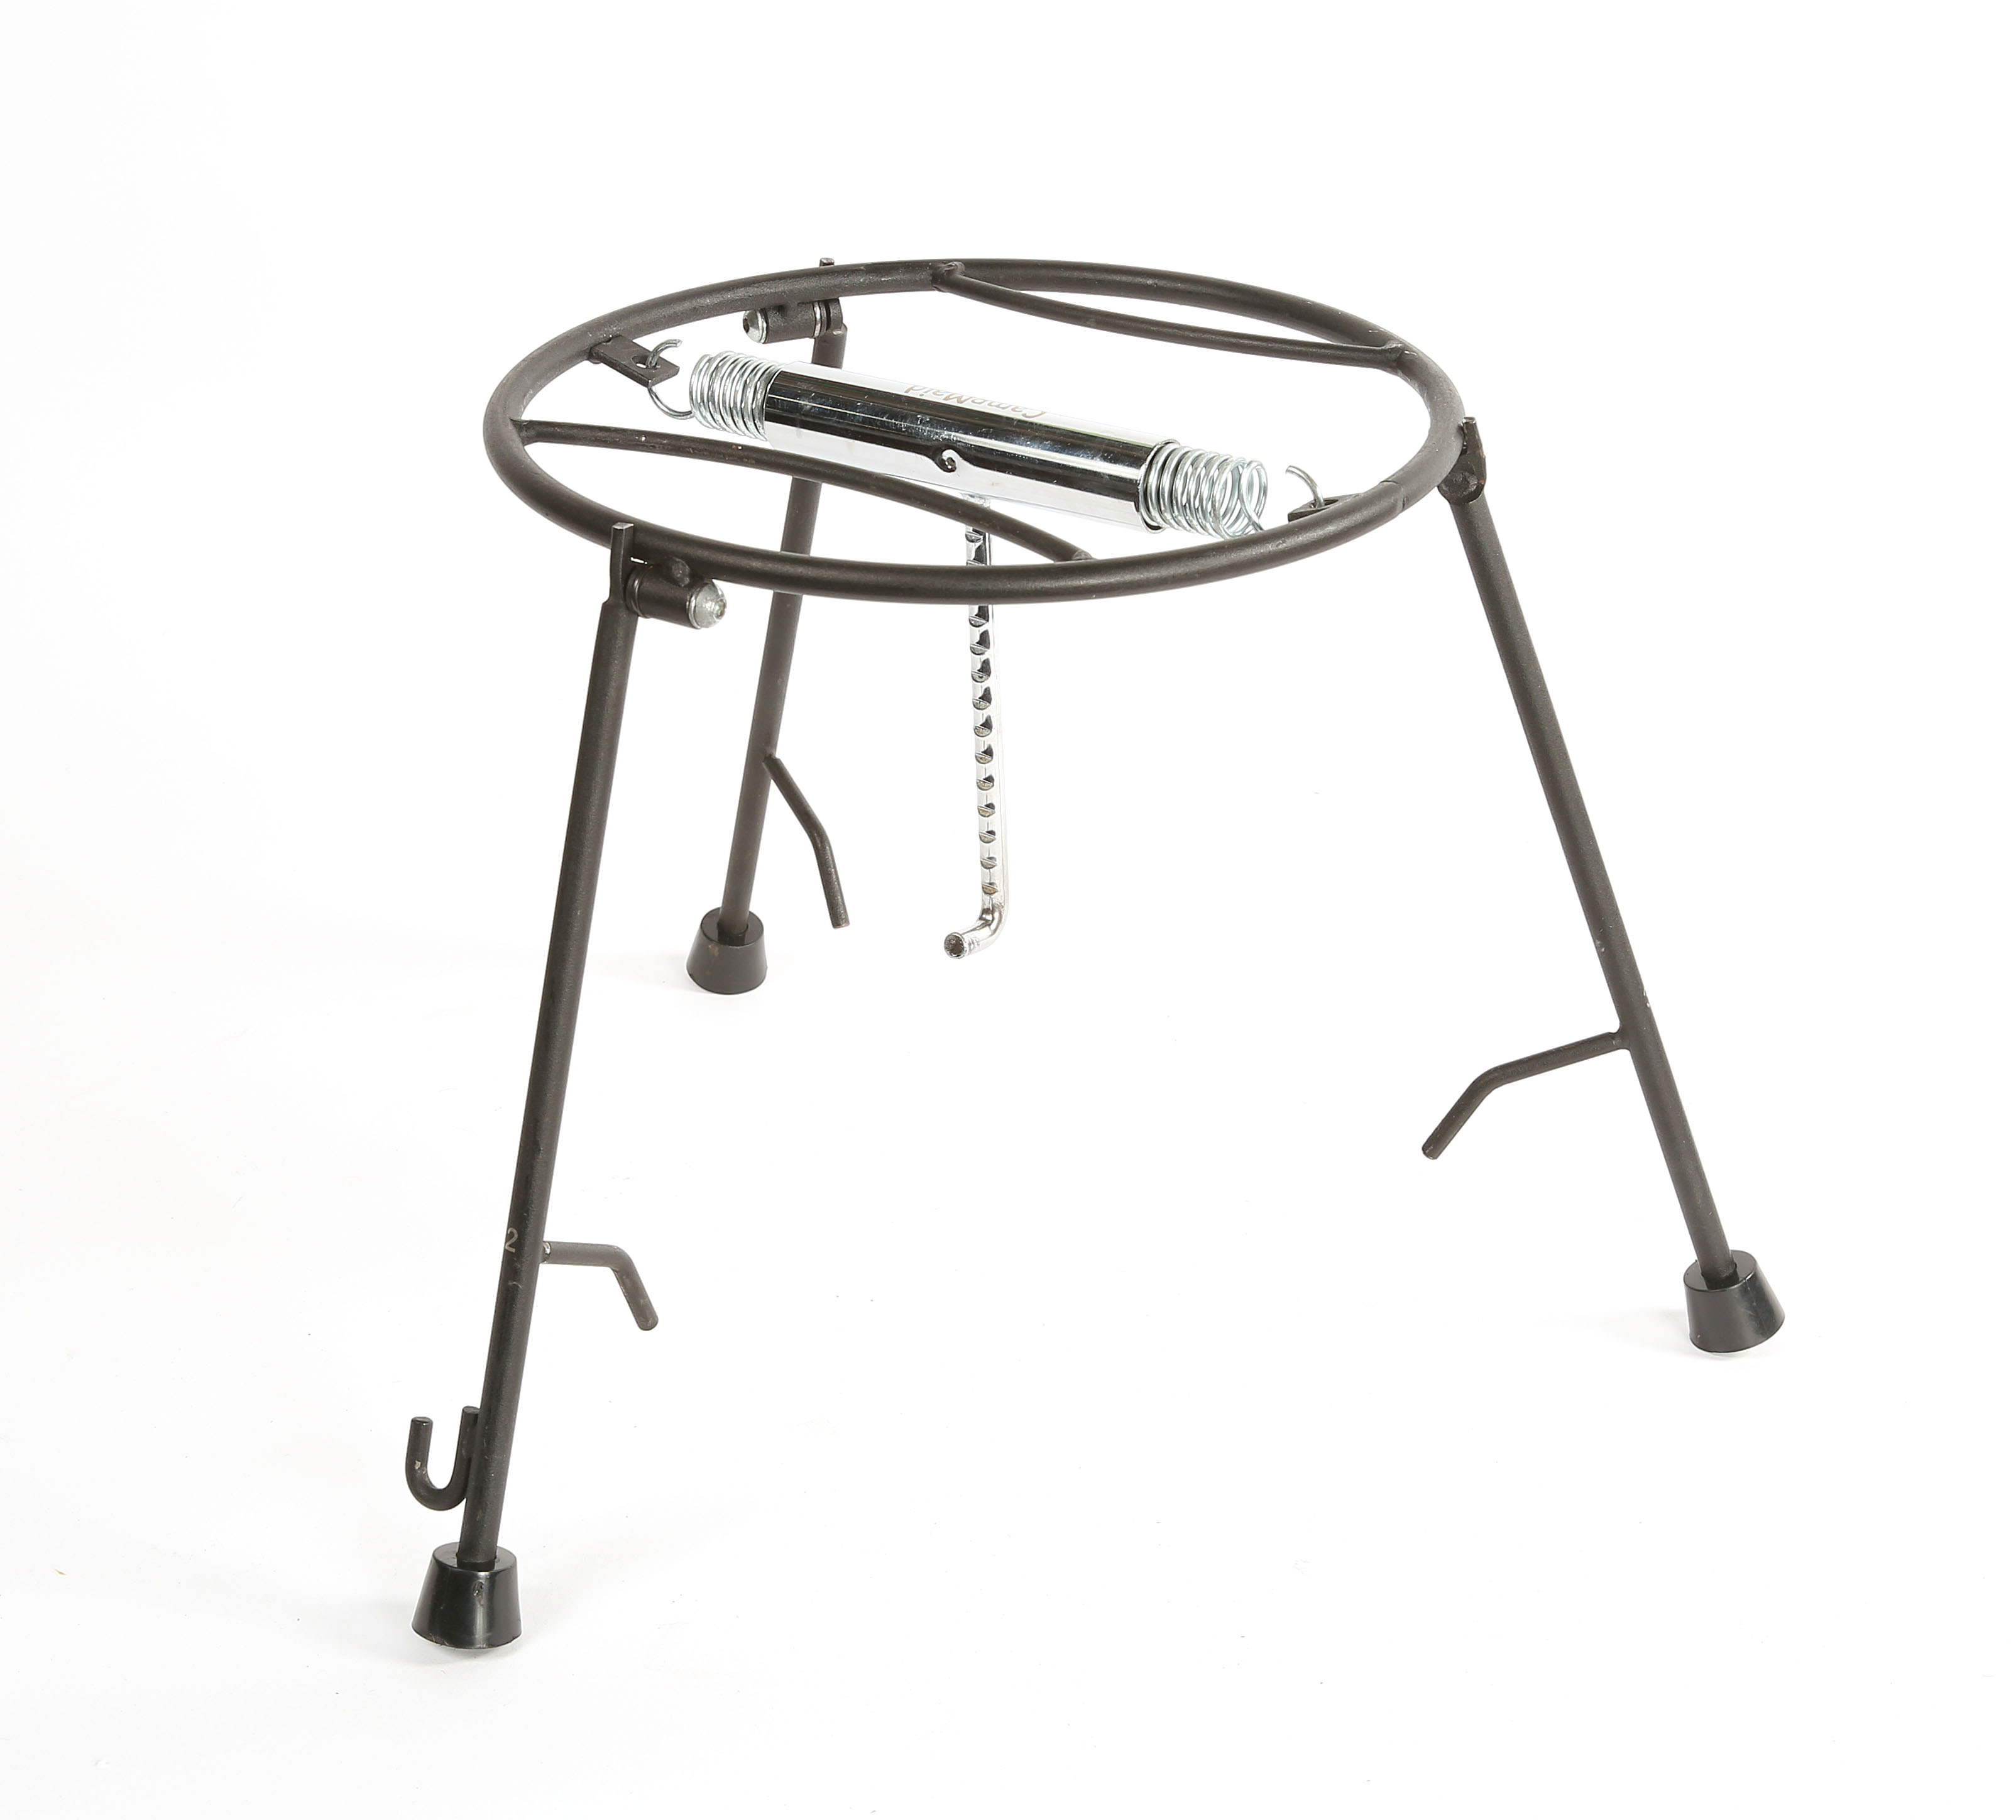 Campmaid Lid Holder And Serving Stand